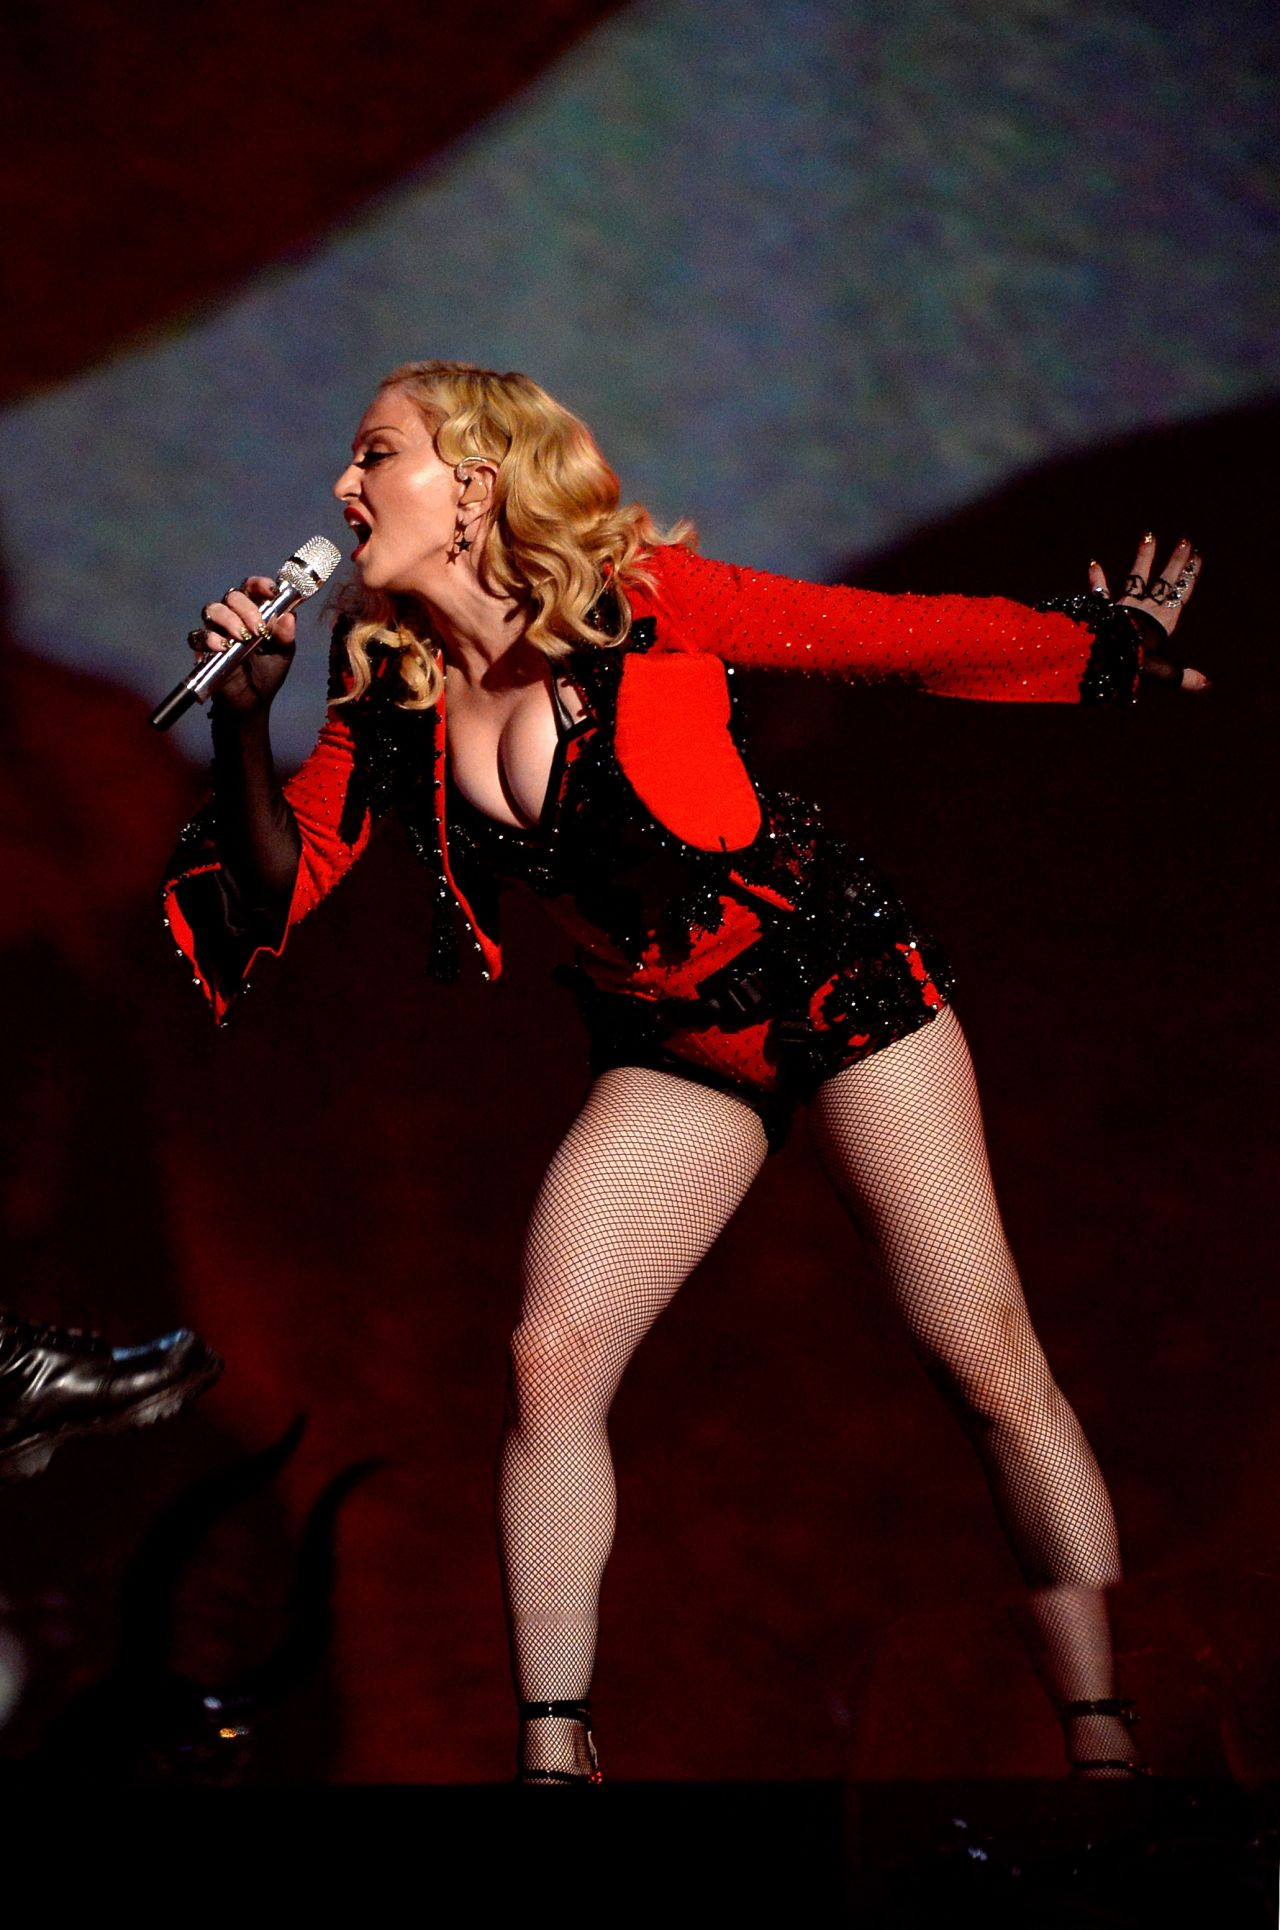 Madonna Performs At 2015 Grammy Awards In Los Angeles